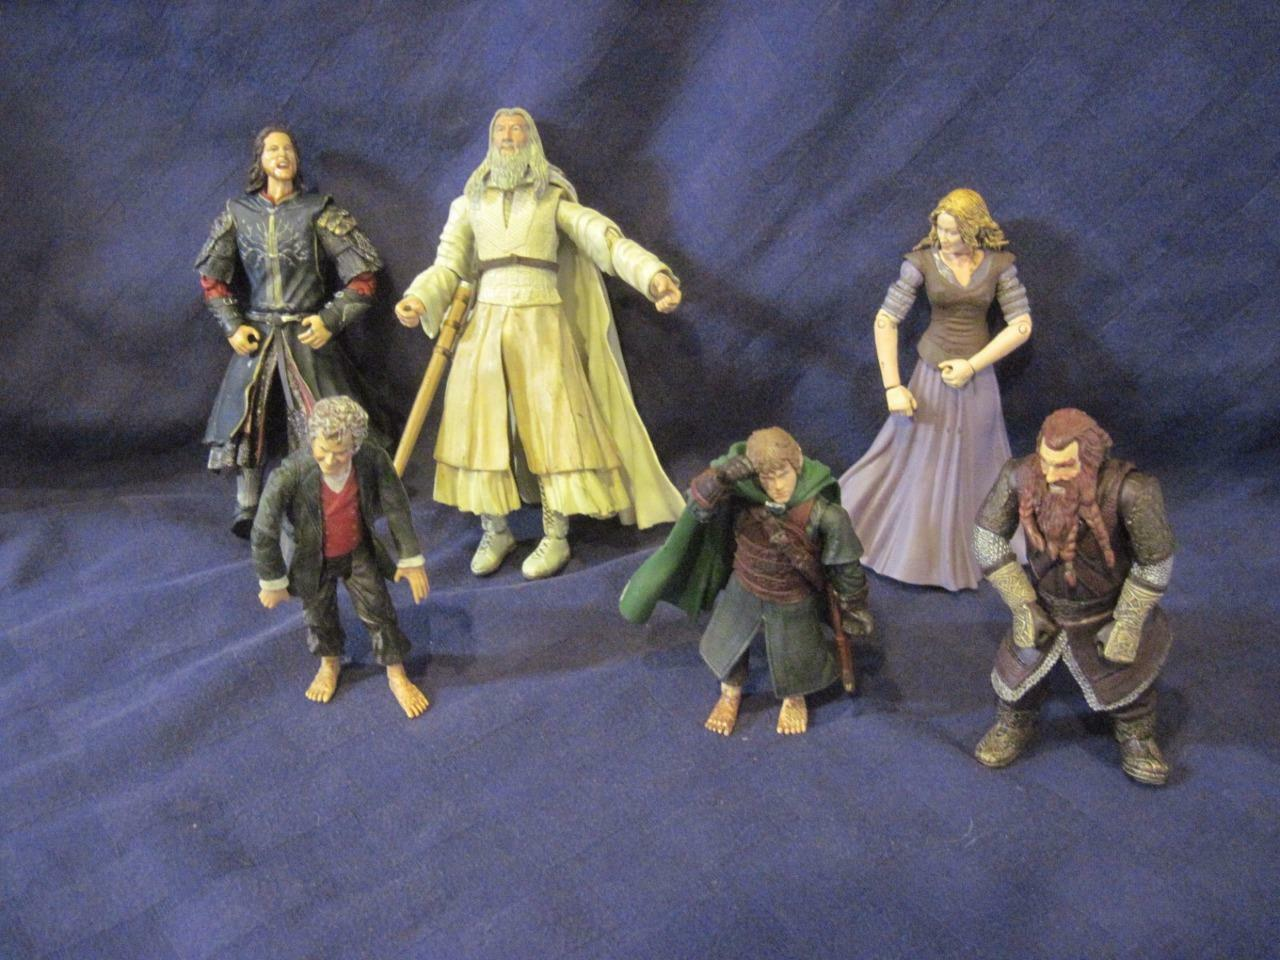 2002 Marvel Lord of the Rings Hobbit Action Figure Aragorn-Bilbo-More Lot of 5